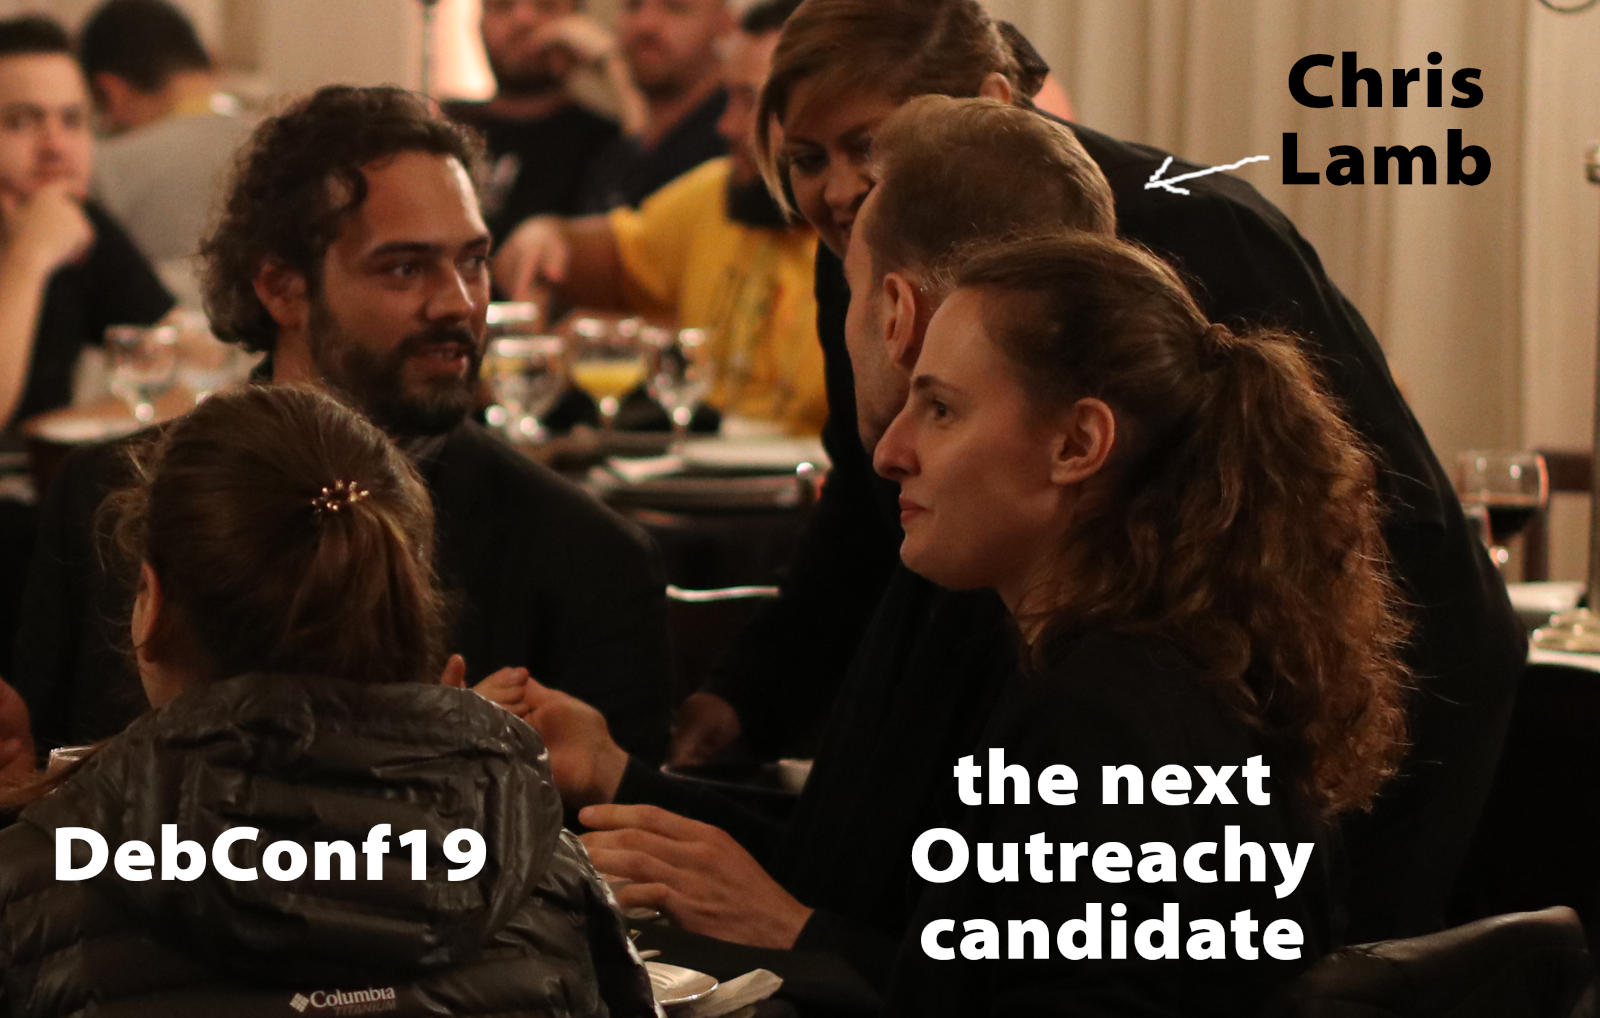 DebConf19, Chris Lamb, lamby, outreachy candidate, dinner date